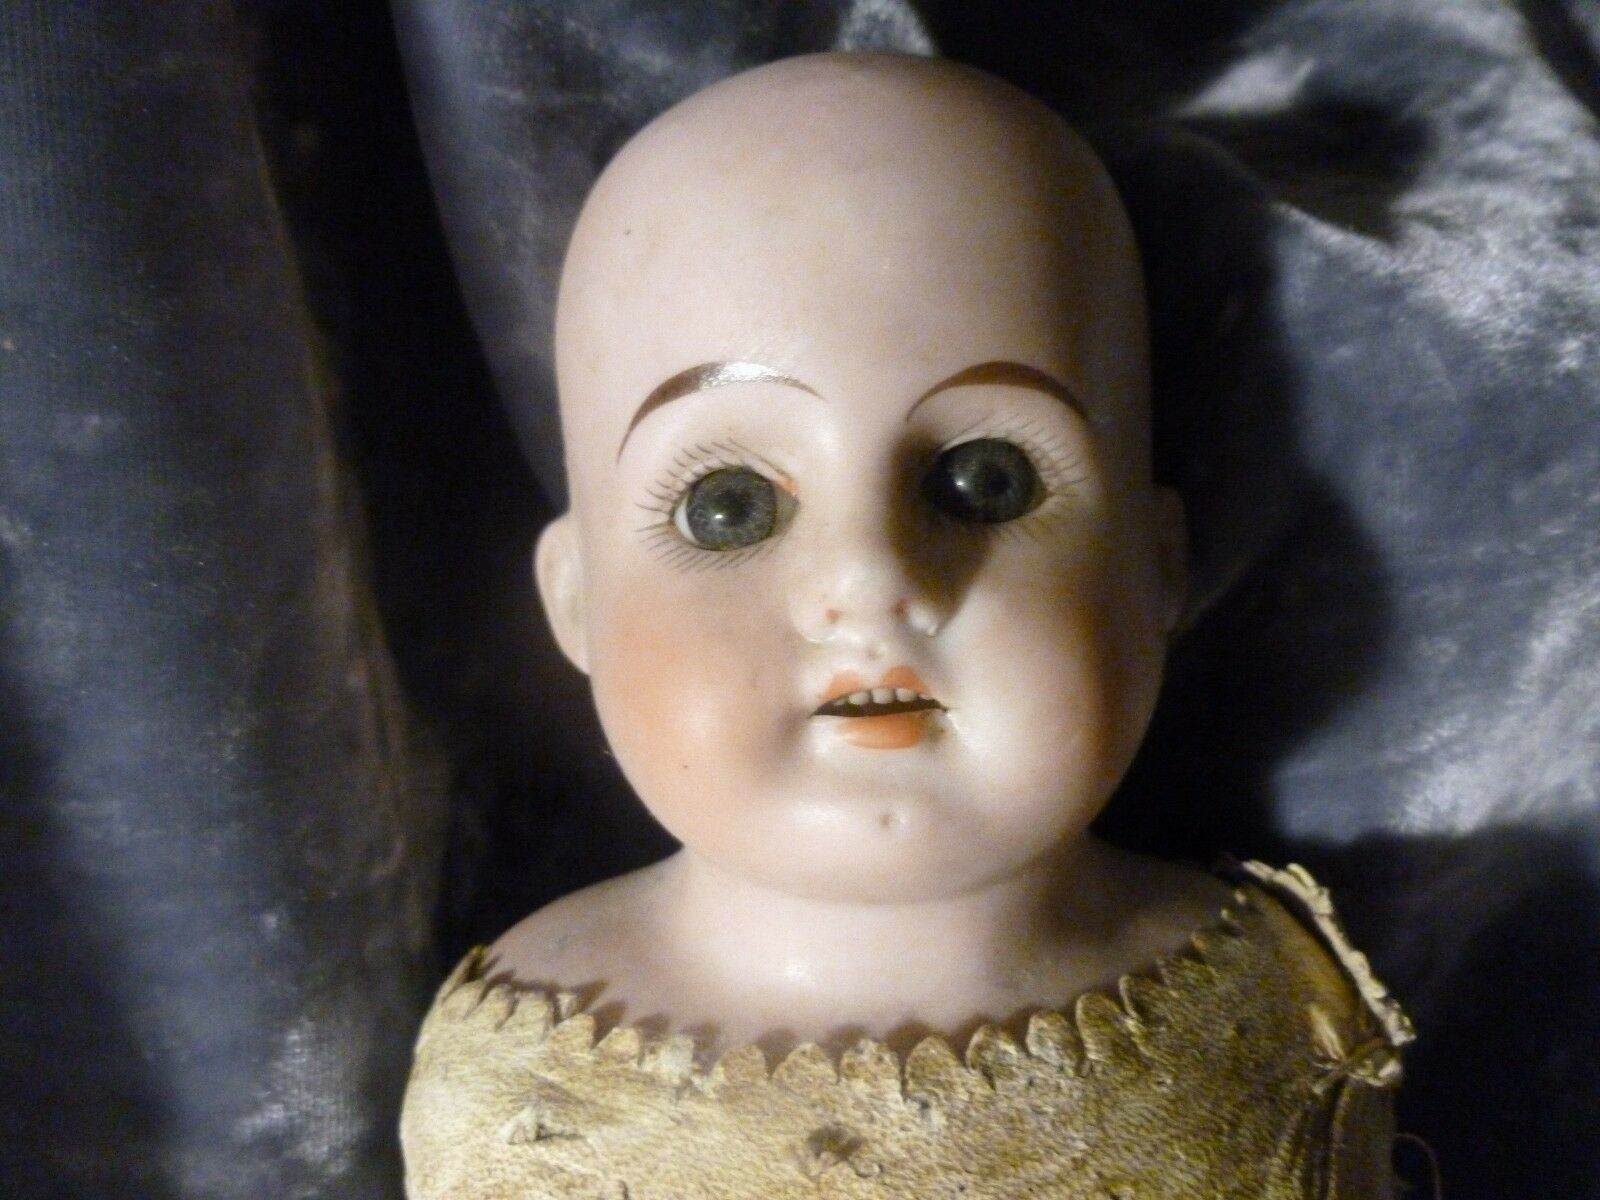 ANTIQUE GERMAN WIEFEL & COMPANY BISQUE DOLL WITH OPEN MOUTH ALL ORIGINAL NO HAIR